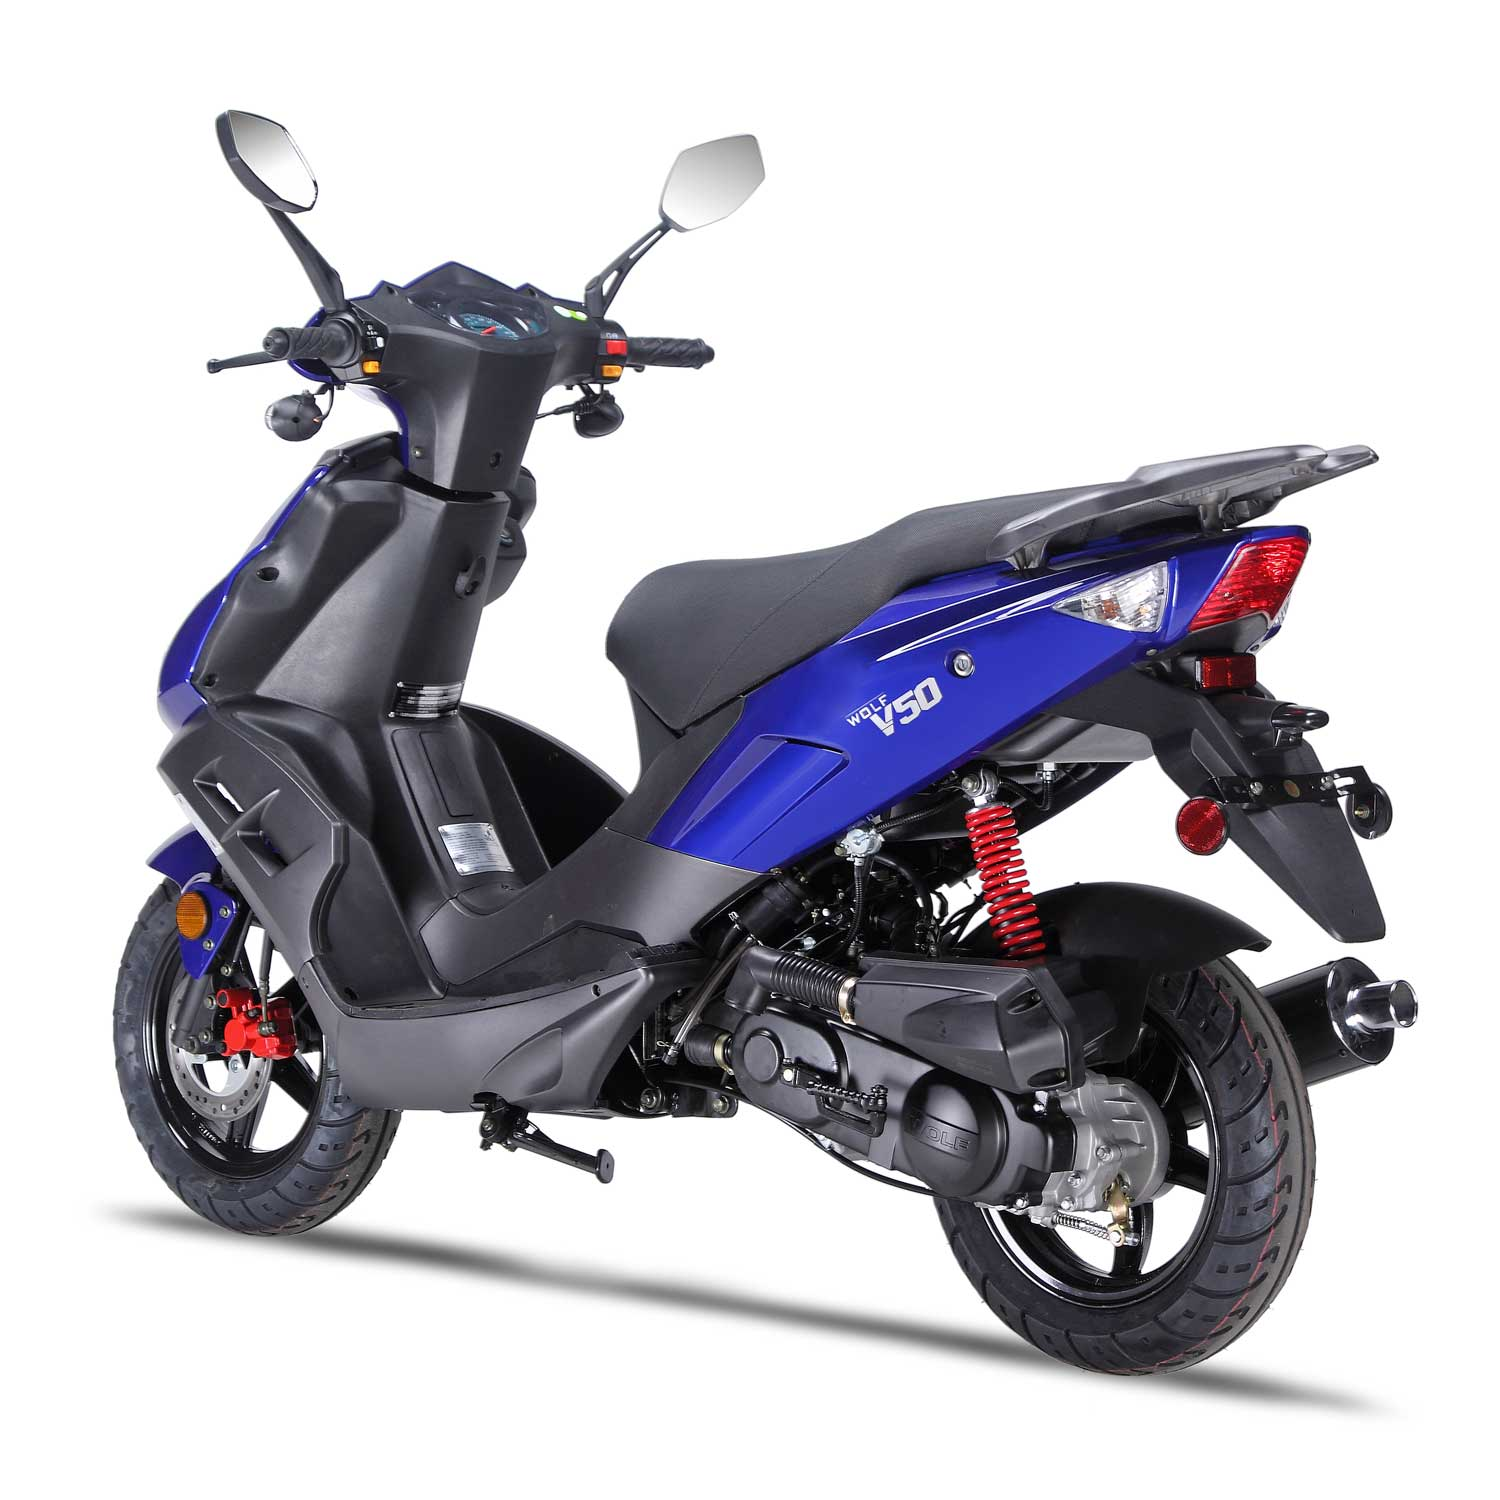 50cc Scooter Wolf V50 - 50cc Scooter